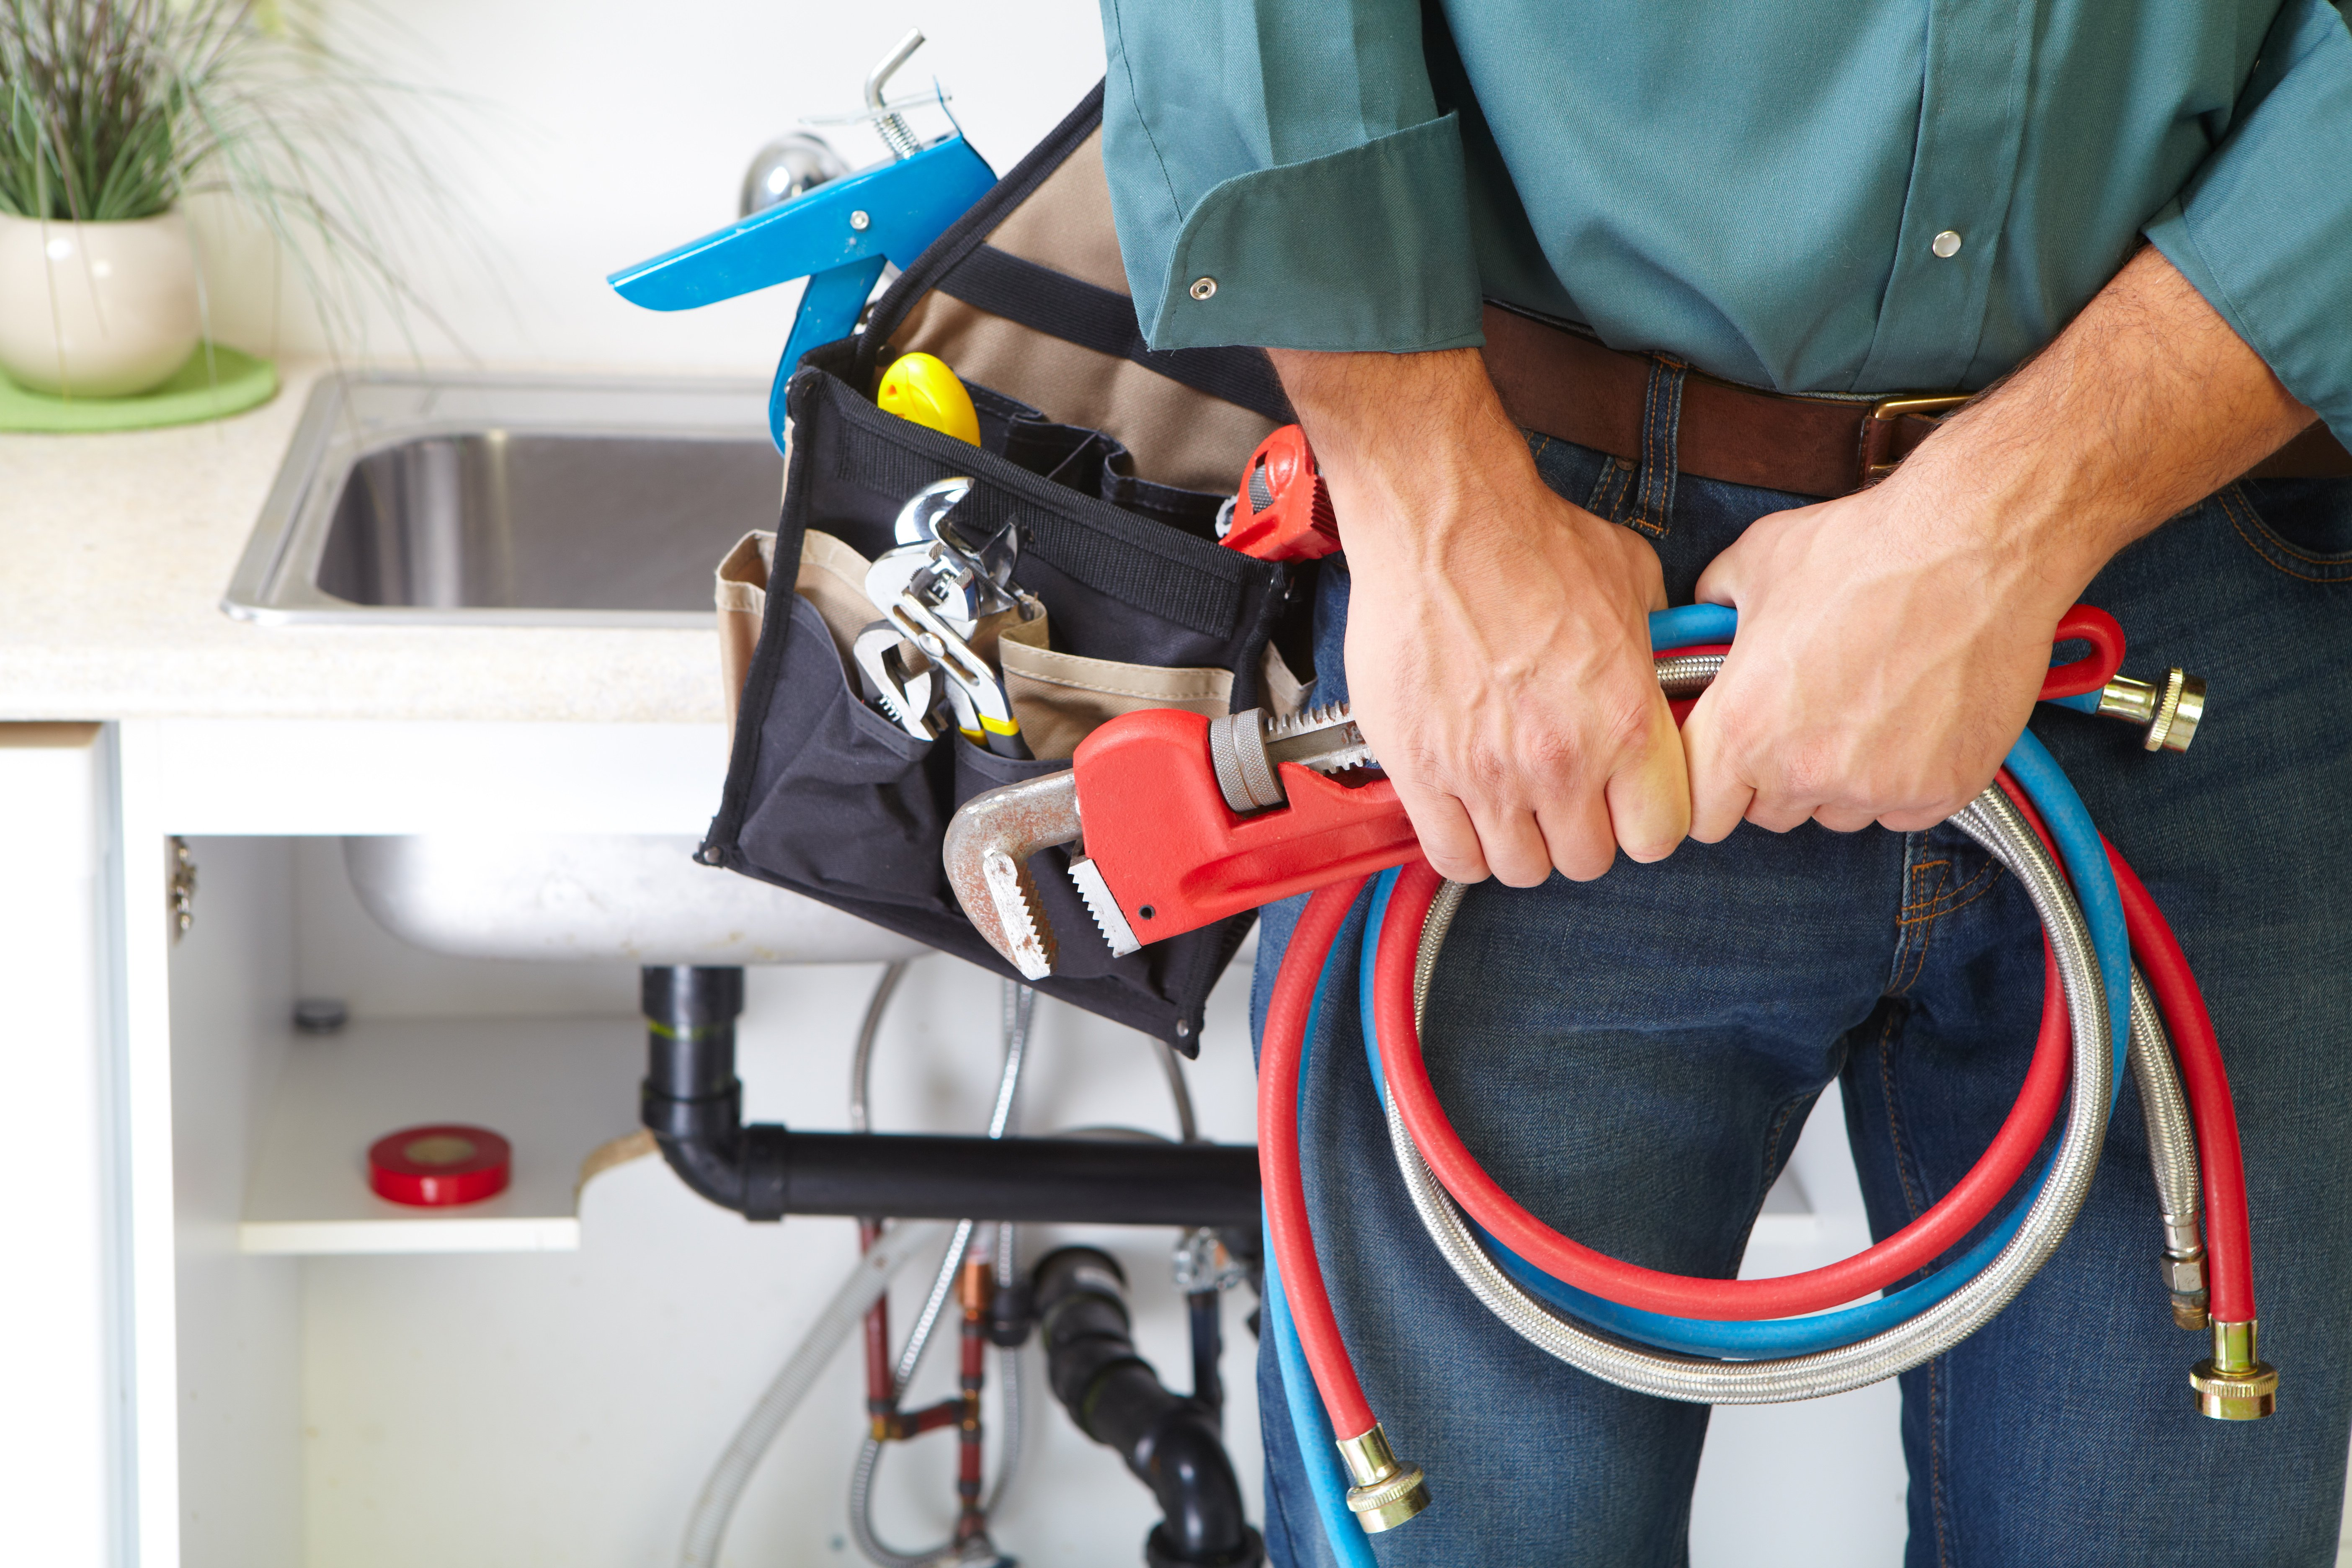 Plumber with tools and equipment for emergency plumbing services